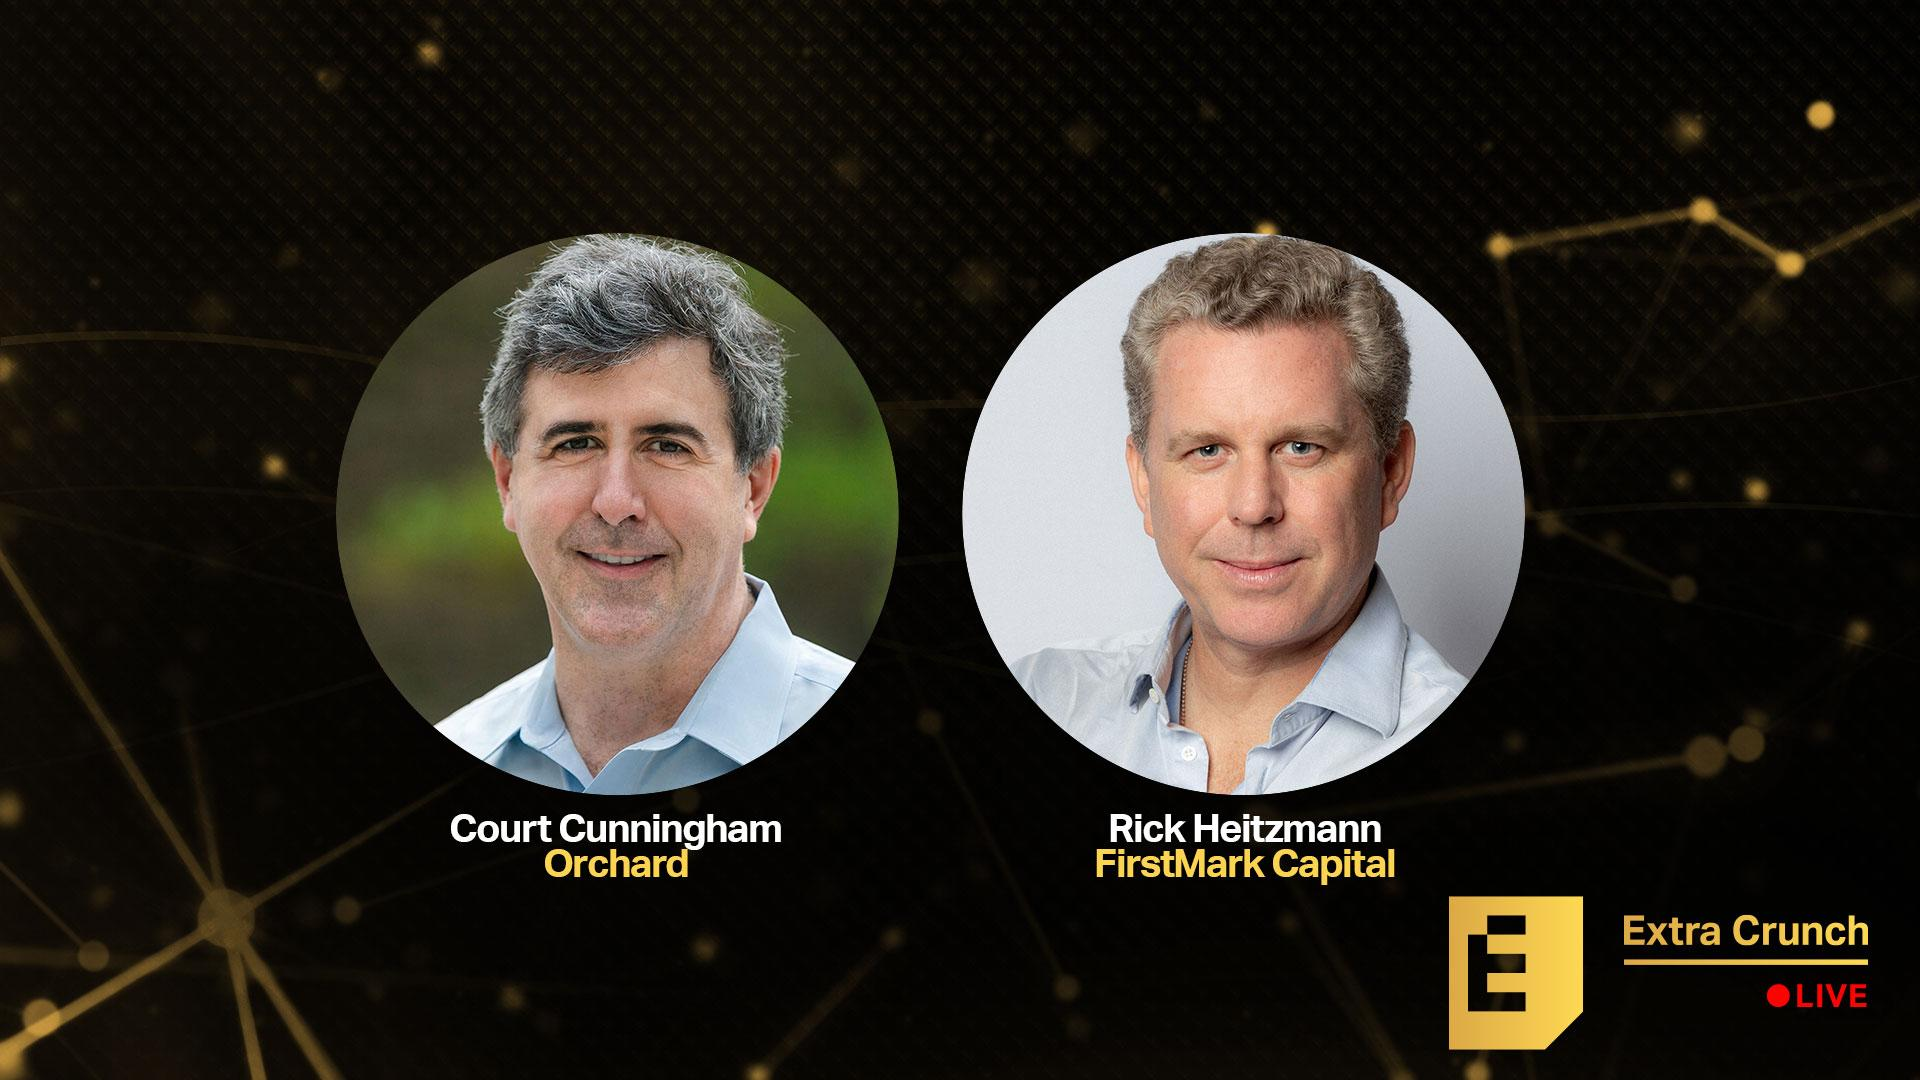 Hear how to raise big funding (and use it well) from FirstMark's Rick Heitzmann and Orchard's Court Cunningham